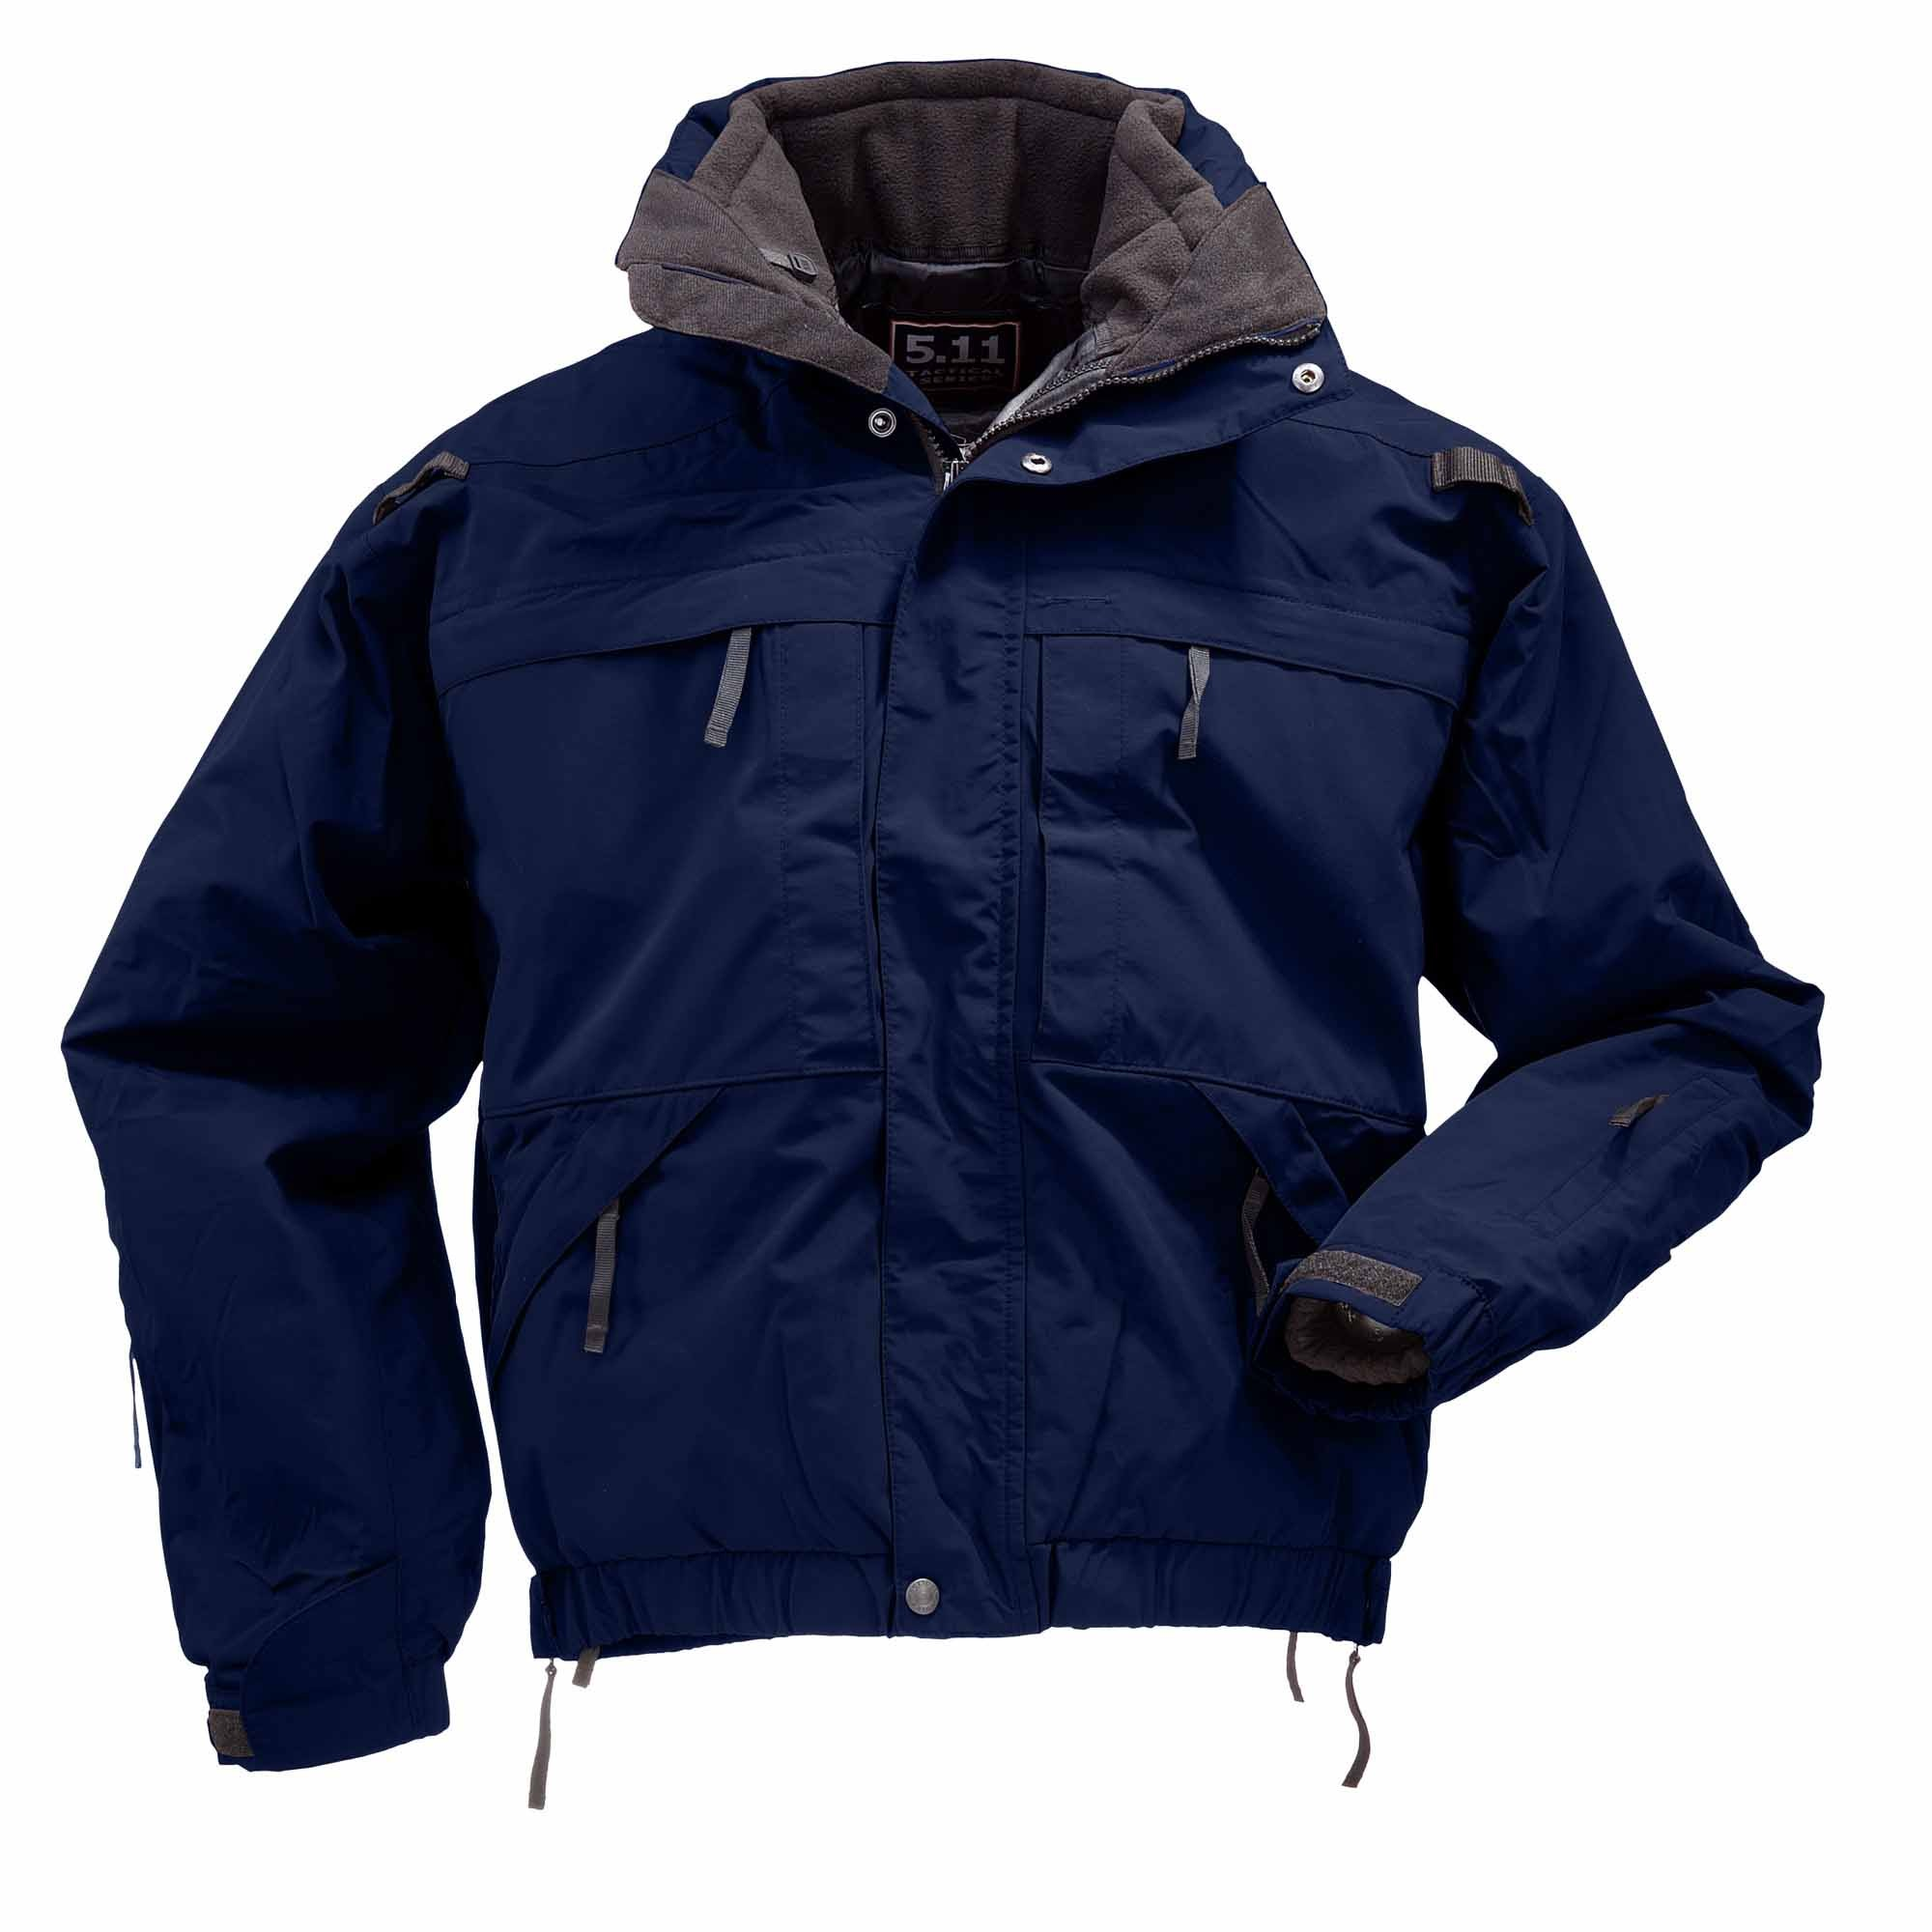 5.11 Mens 5-in-1 Jacket 48017